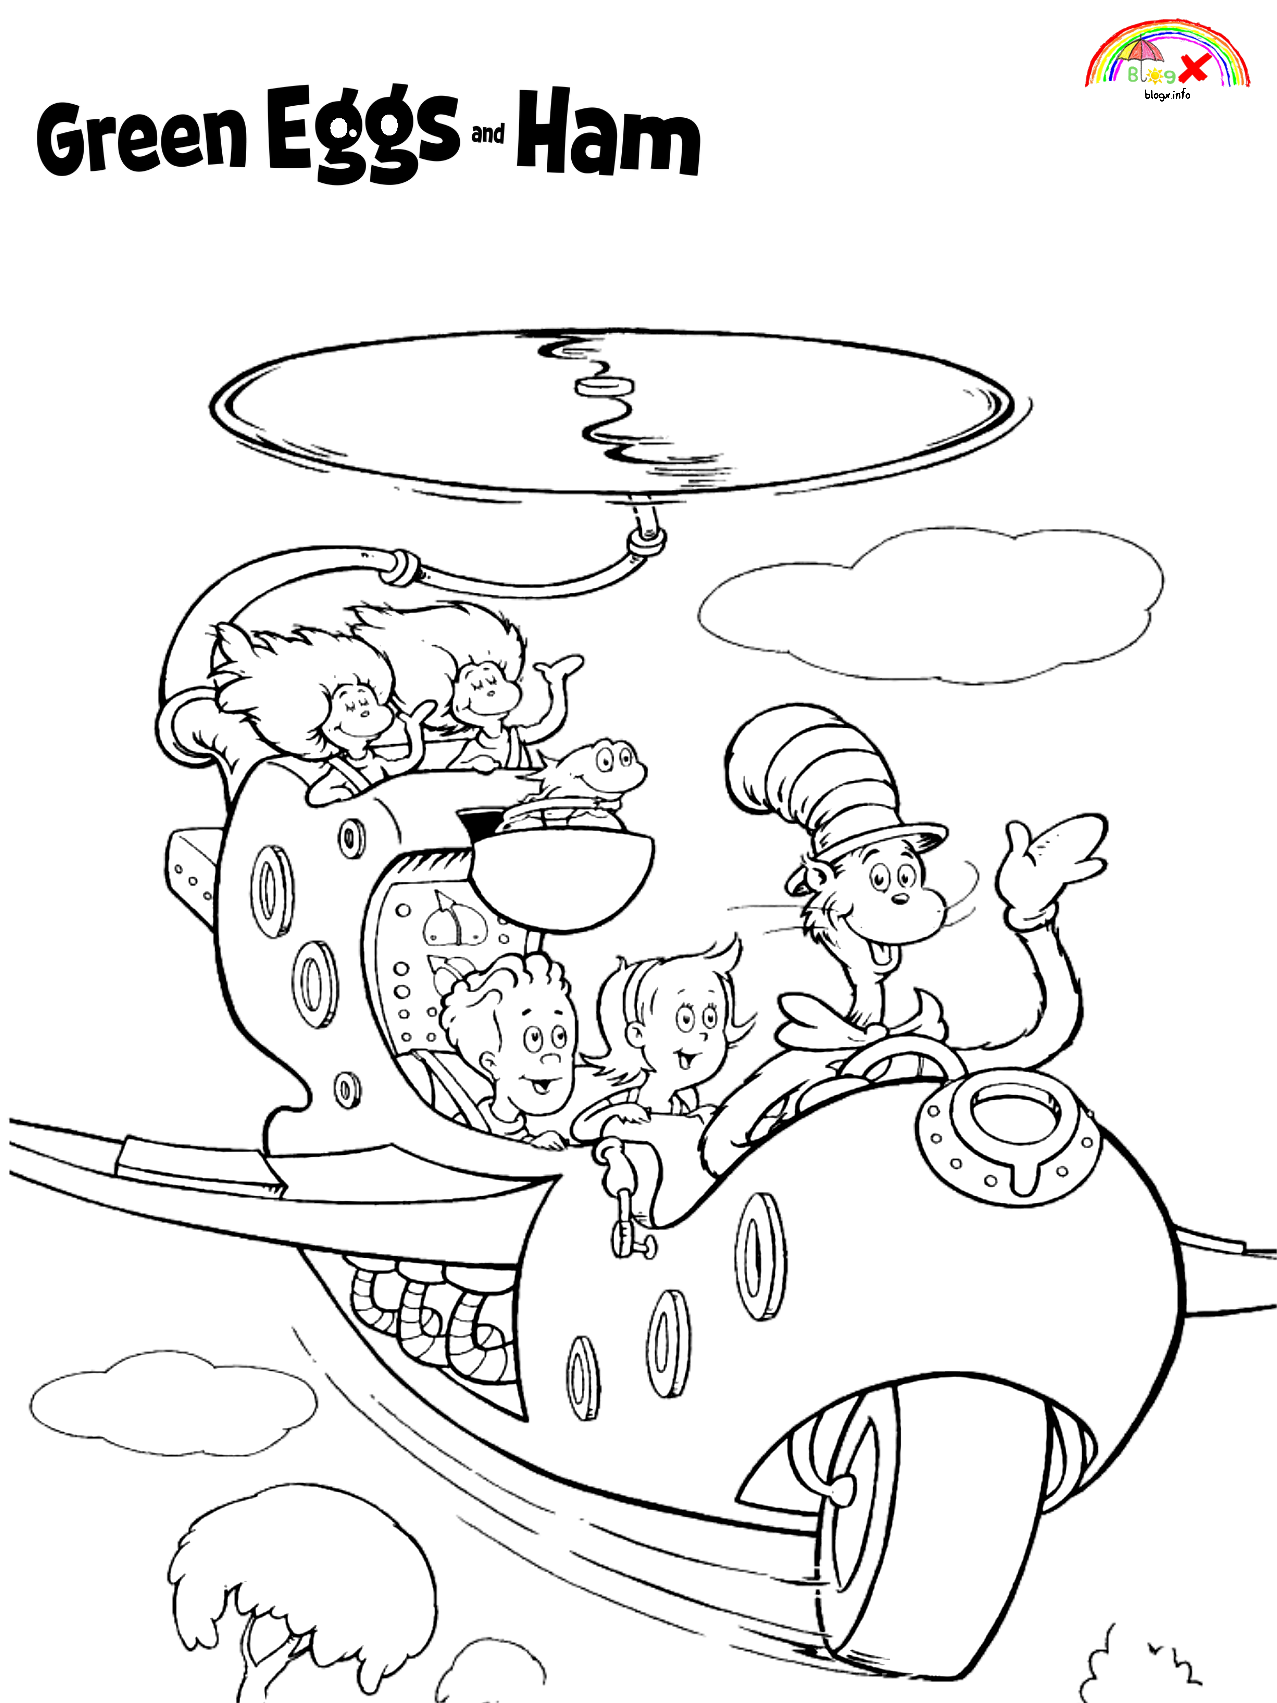 green eggs and ham coloring page how to draw sam i am from green eggs and ham in easy steps green eggs ham and coloring page